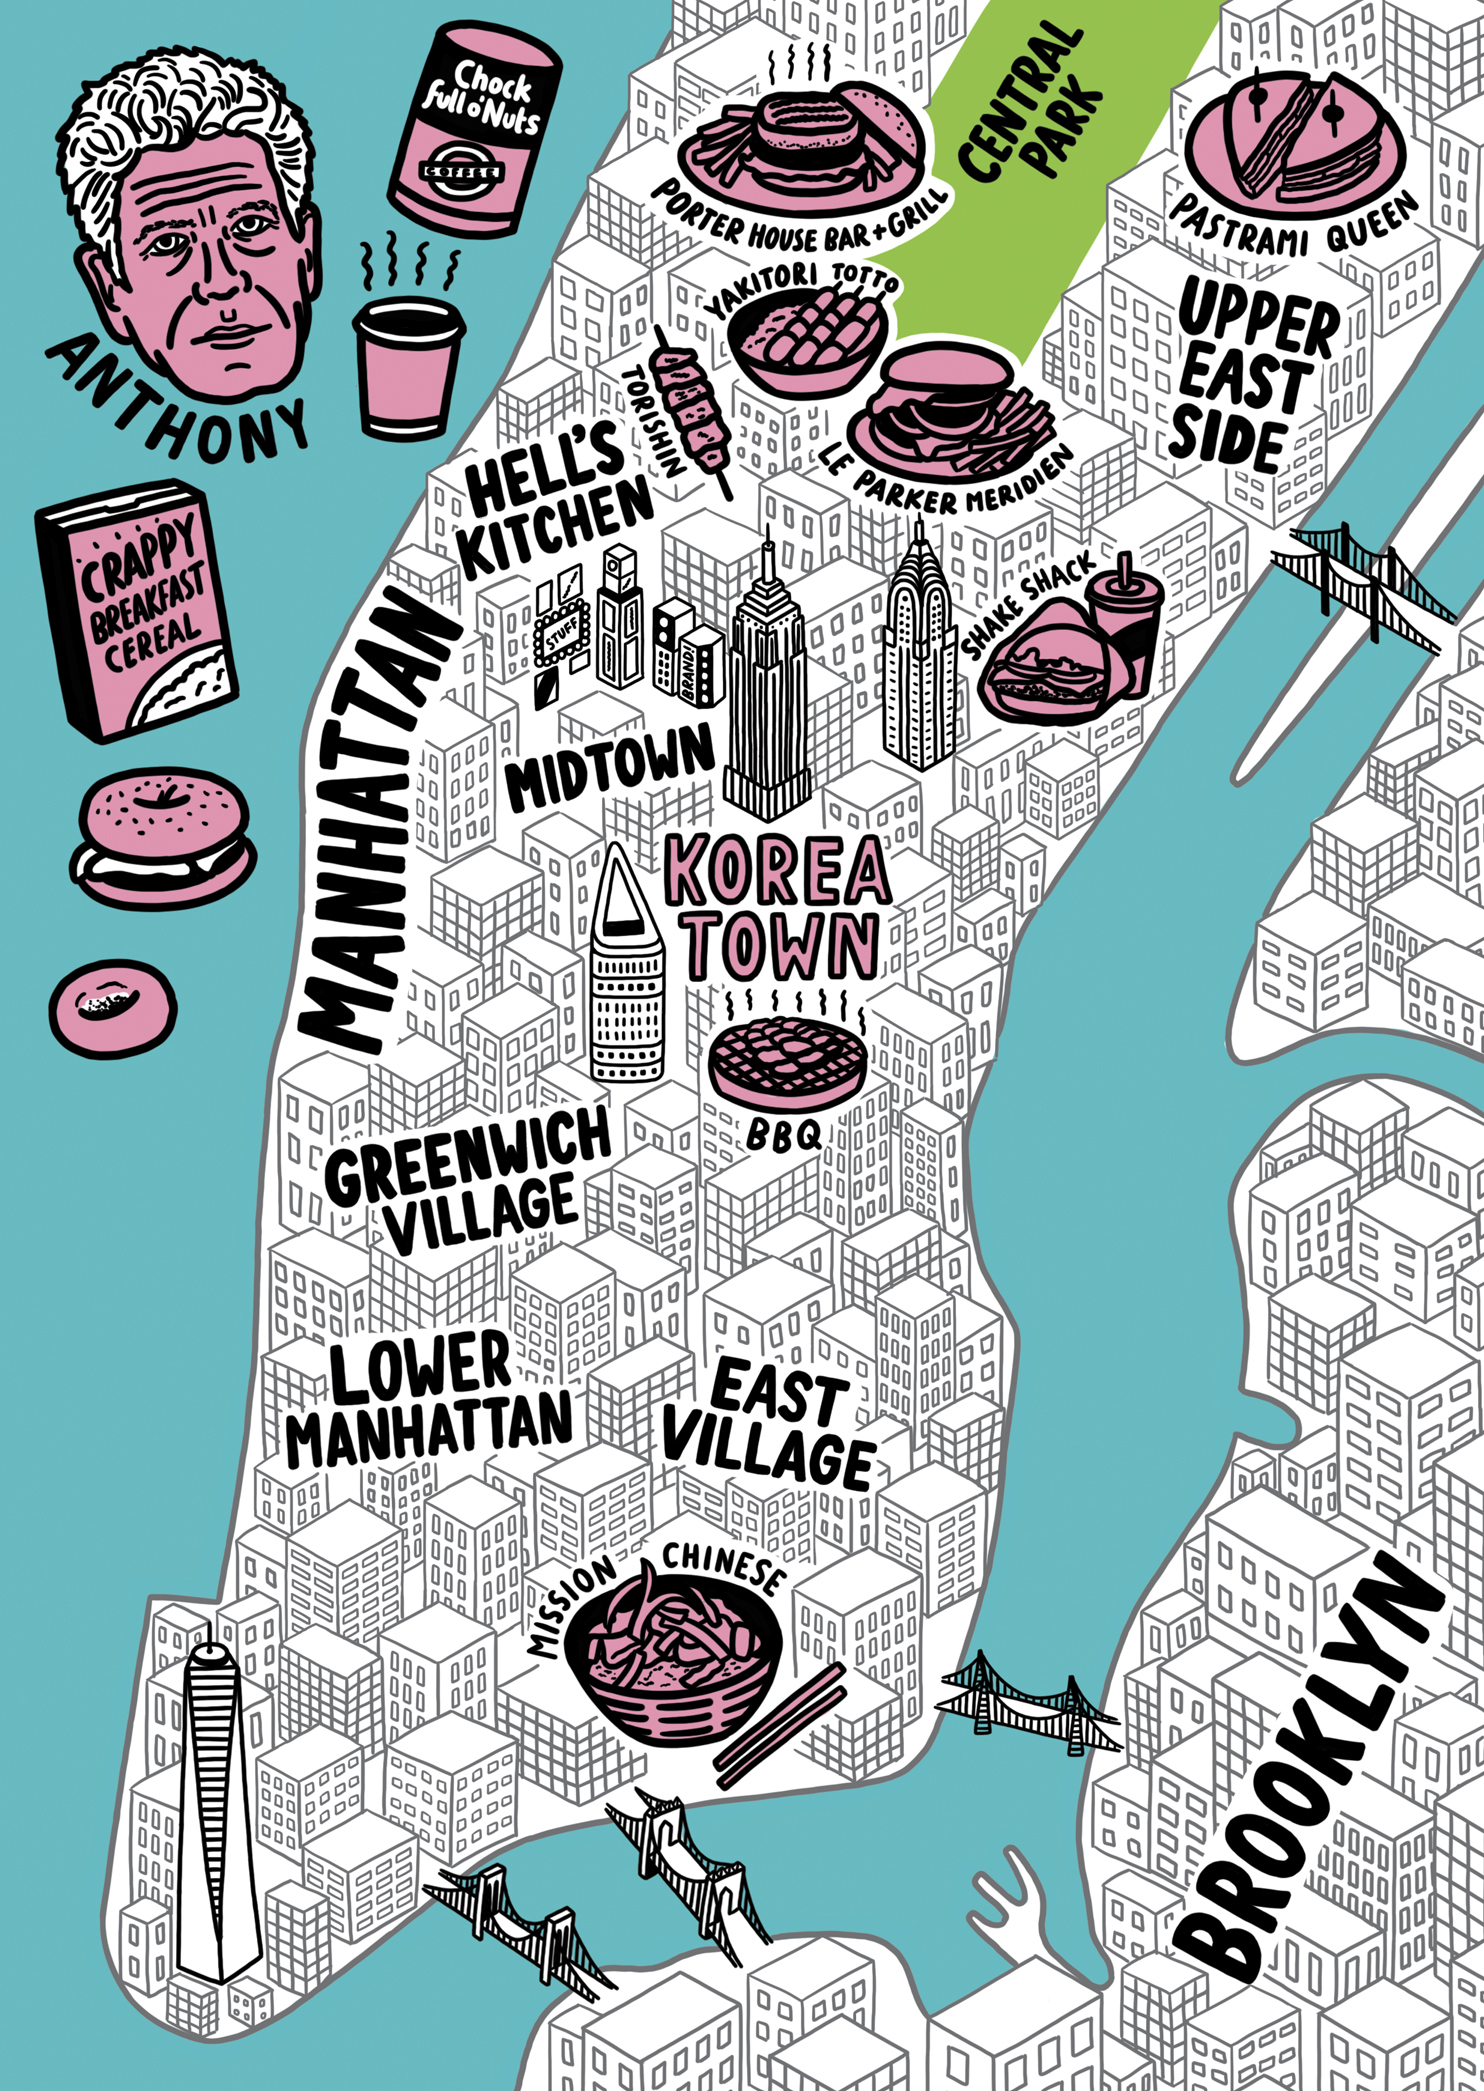 Map Of New York City For Tourists.Anthony Bourdain For Variety Magazine Jenni Sparks